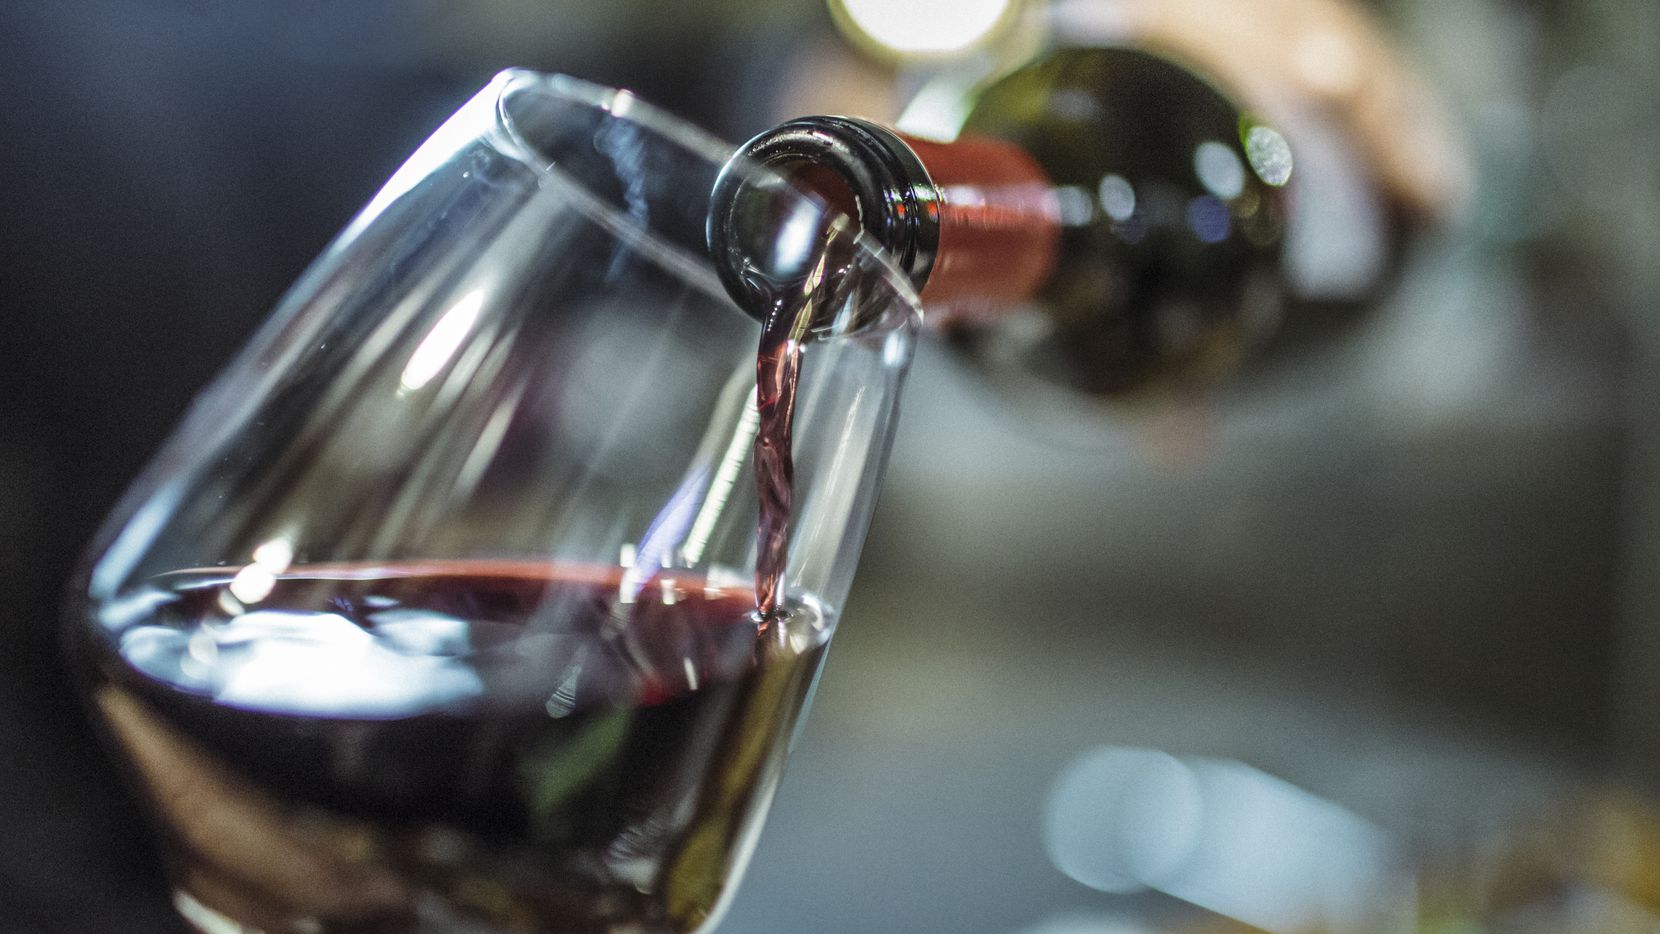 Red wine is poured into a wine glass.